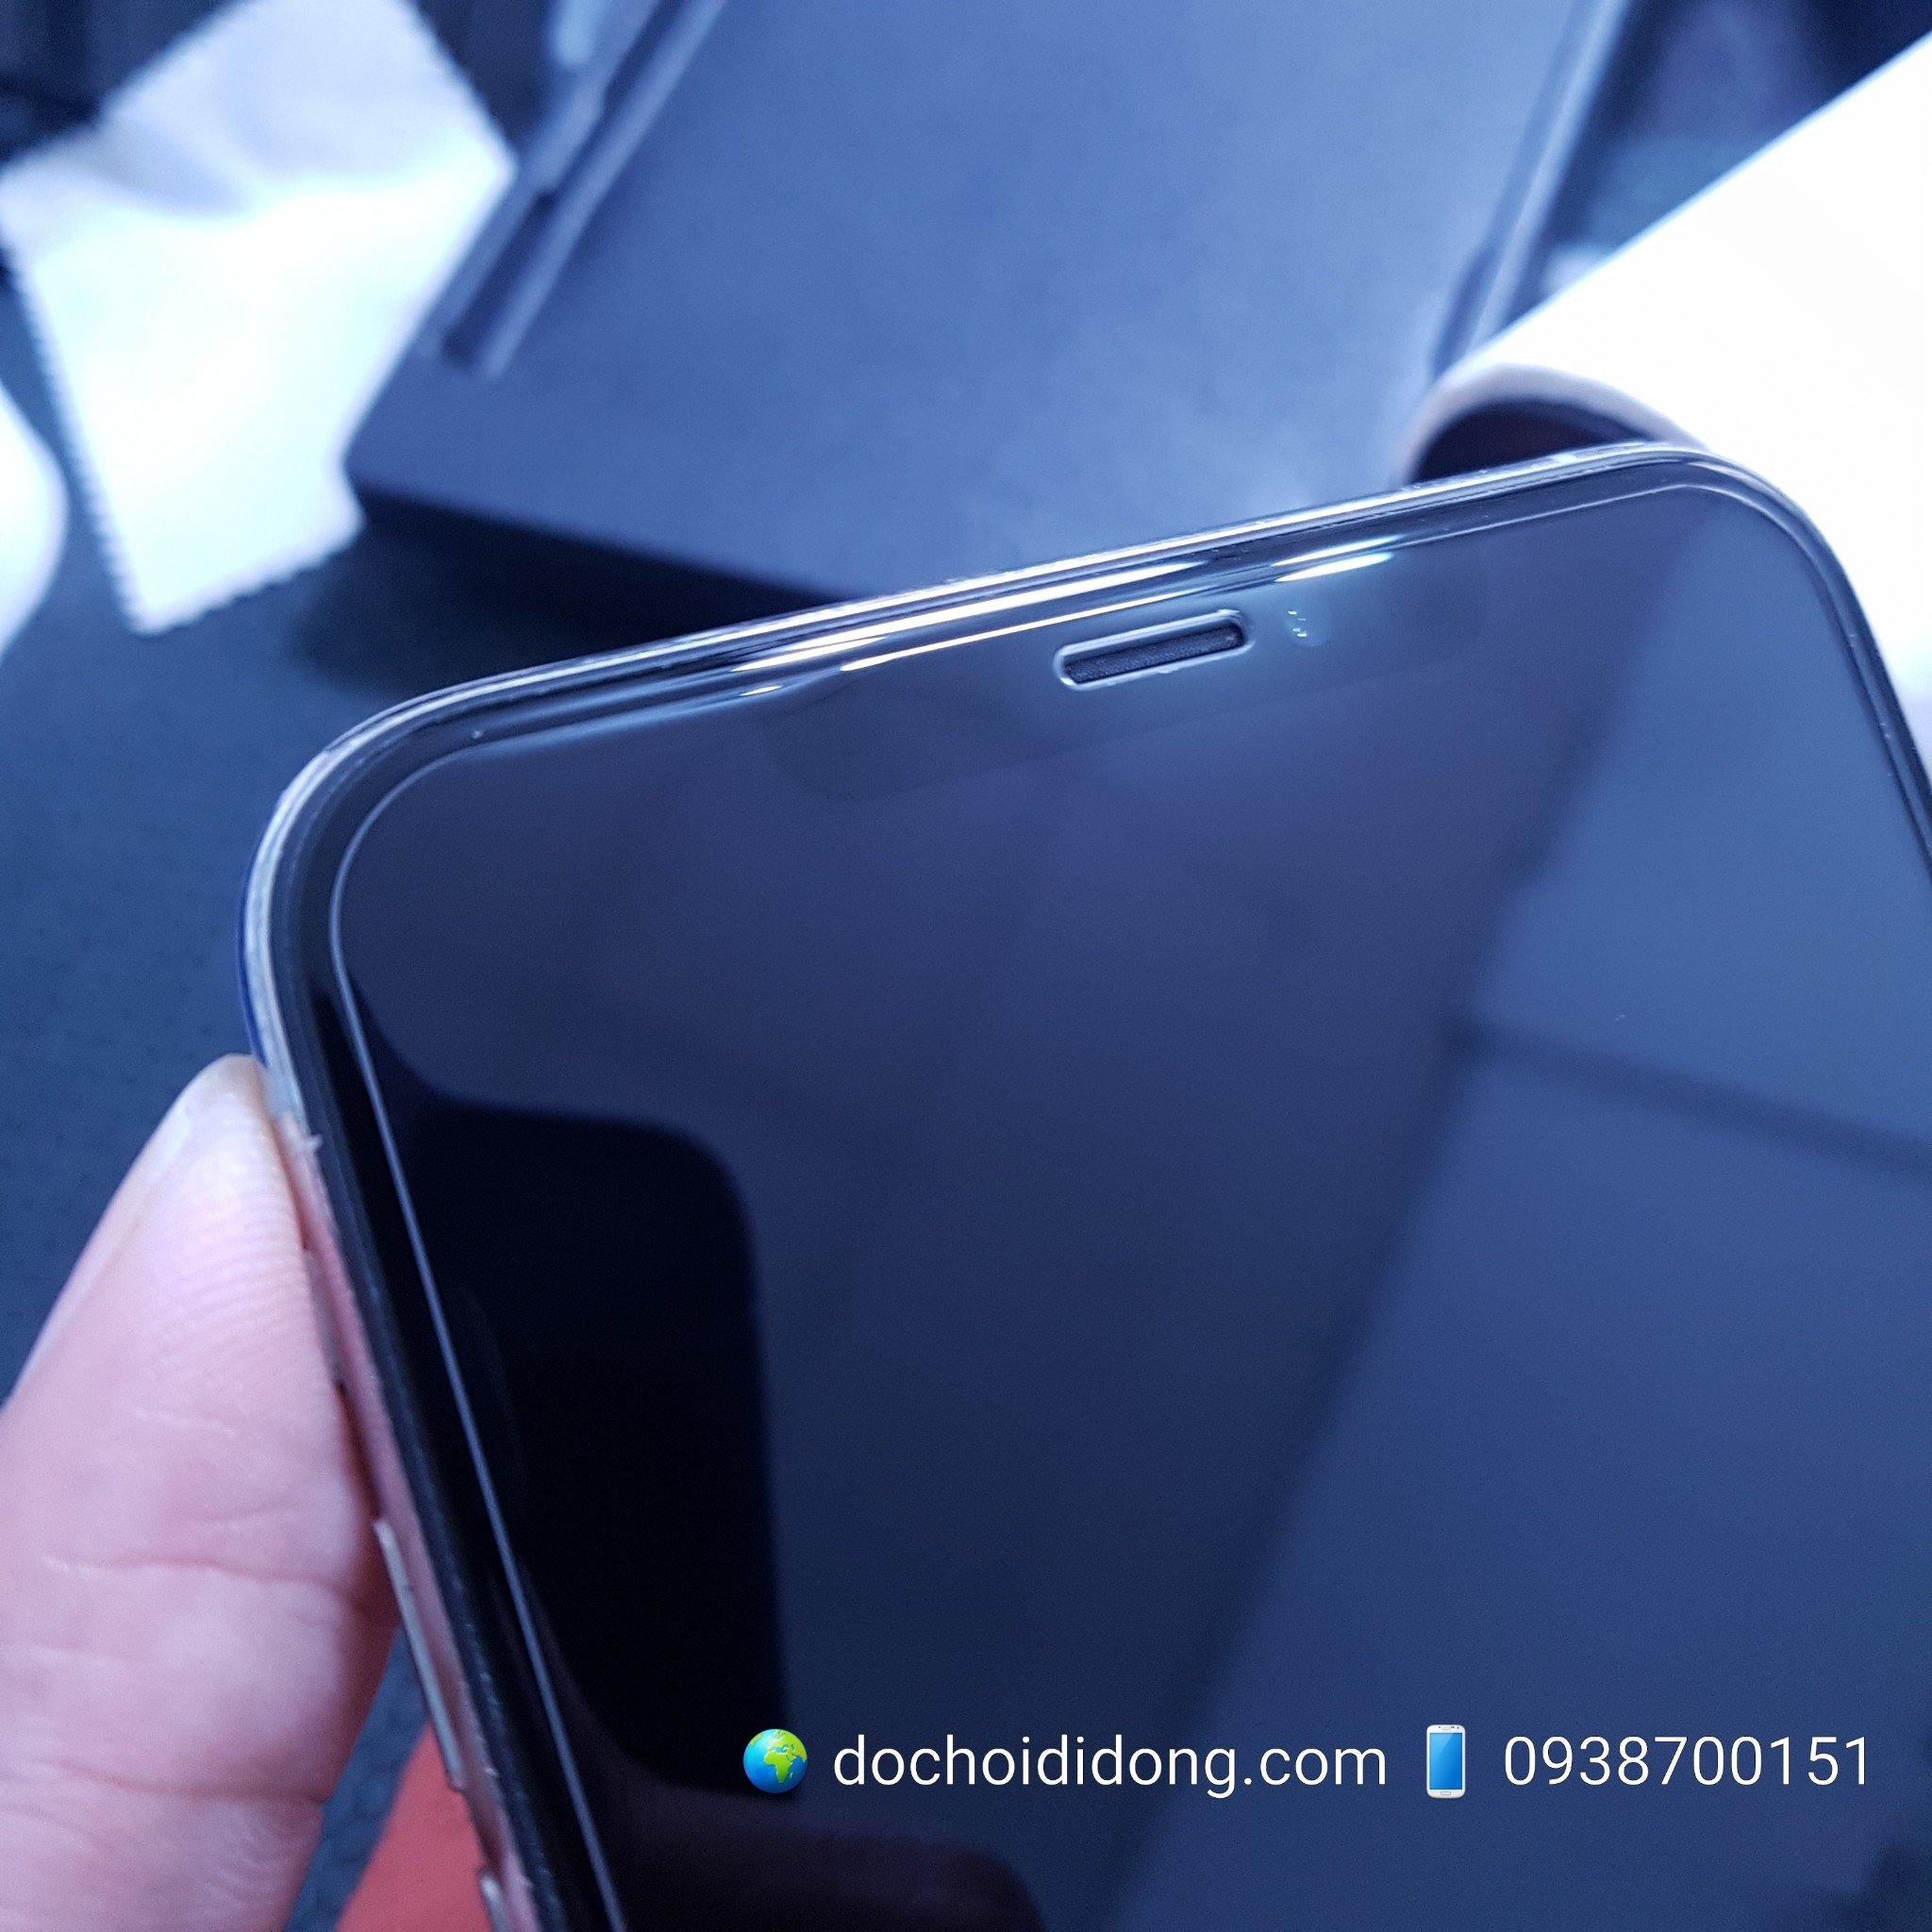 Dán cường lực iPhone XS Max - iPhone 11 Pro Max Zacase All Clear True 2.5D